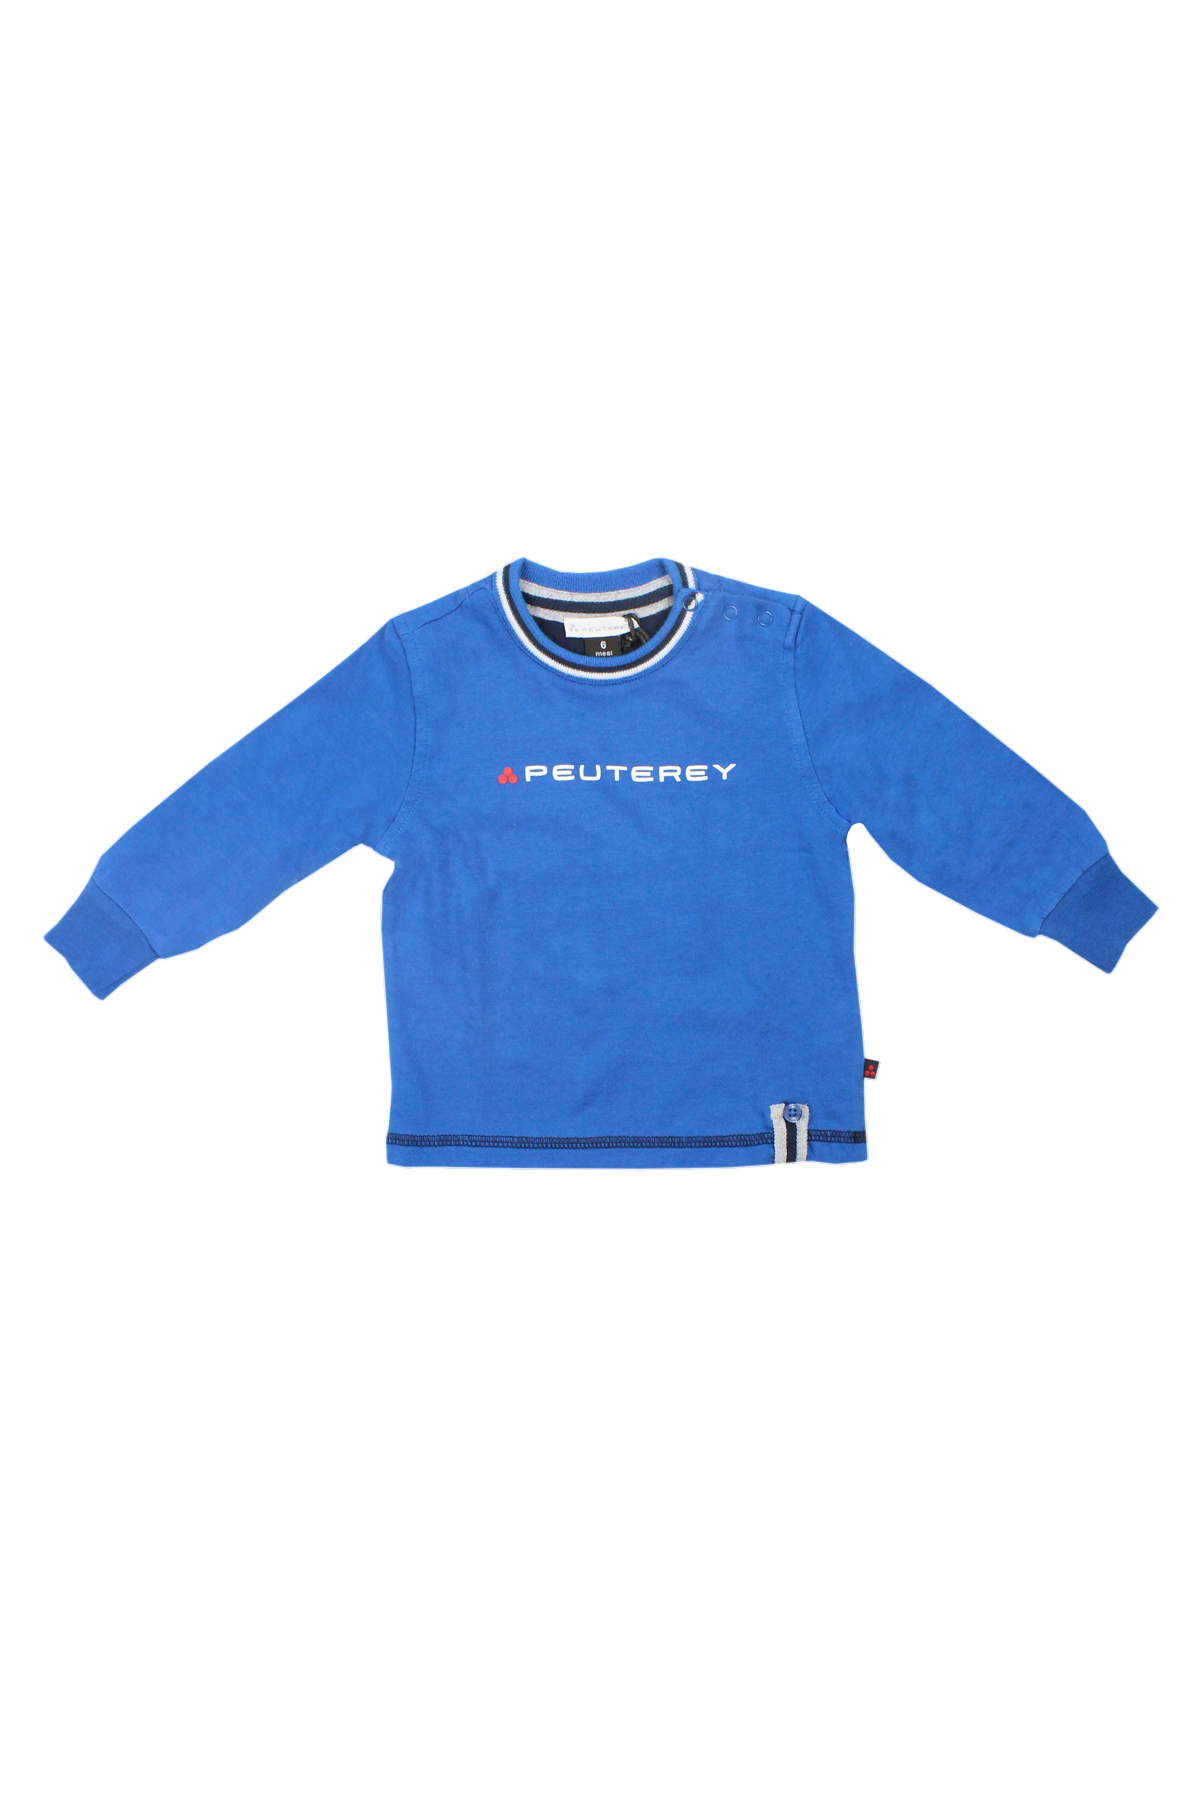 huge selection of df18d 3101a Maglia